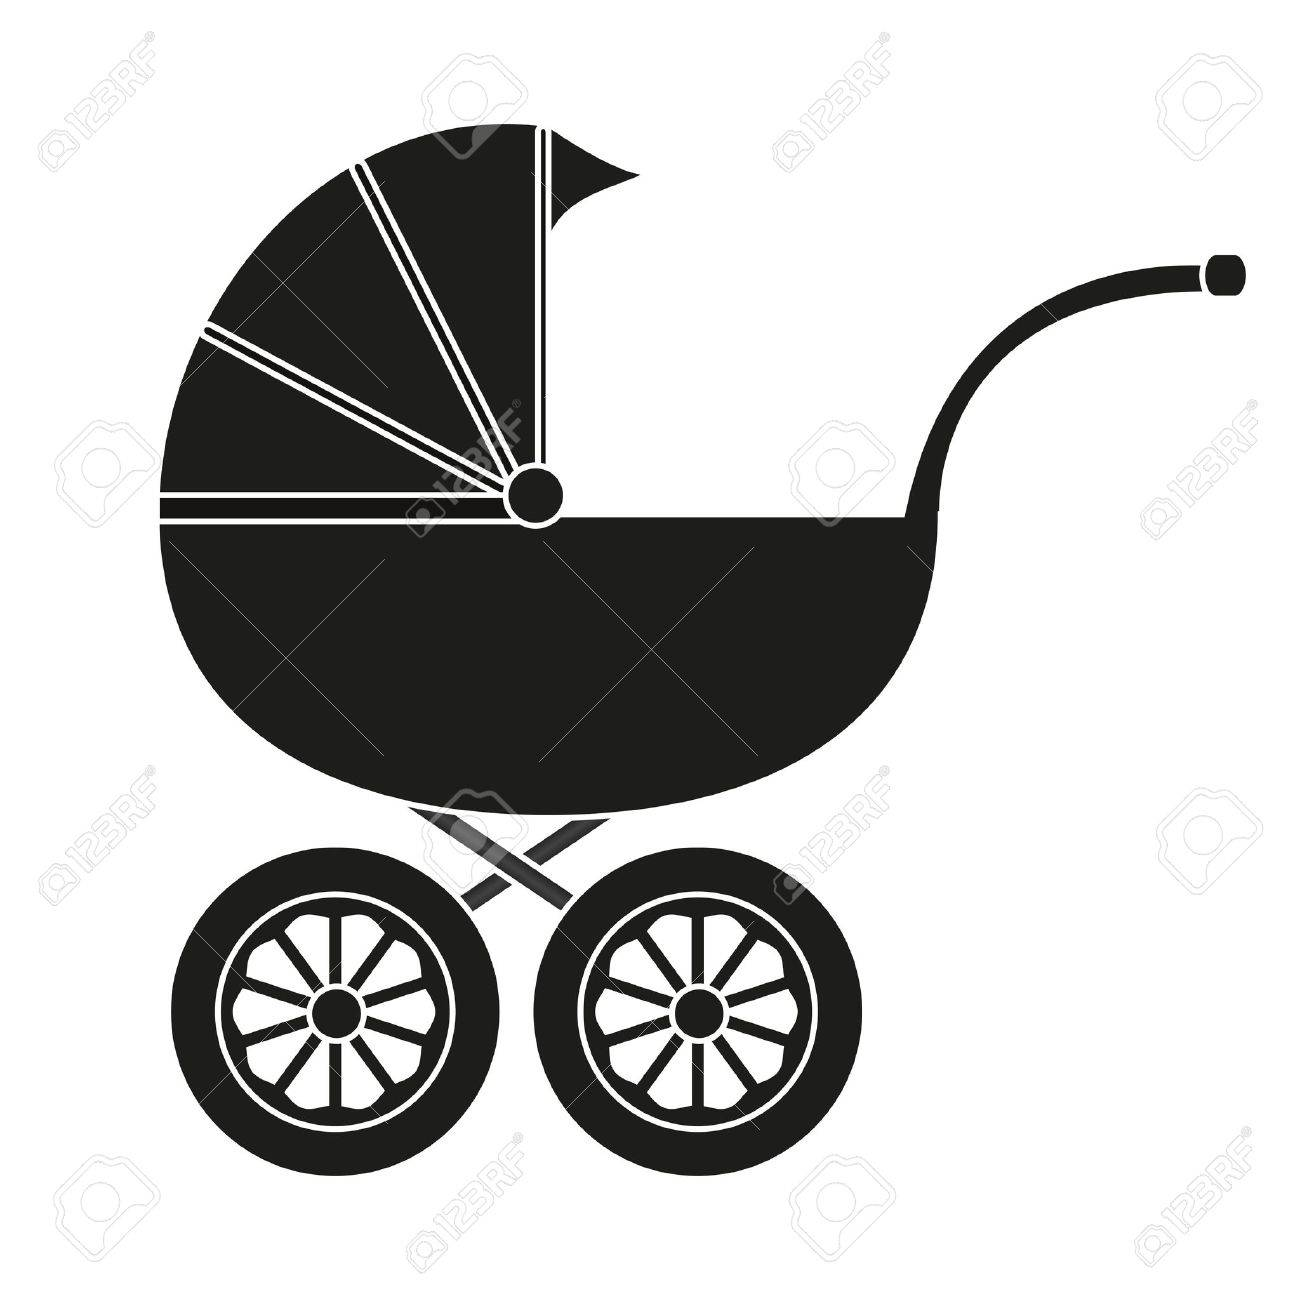 Baby carriage - 17054911